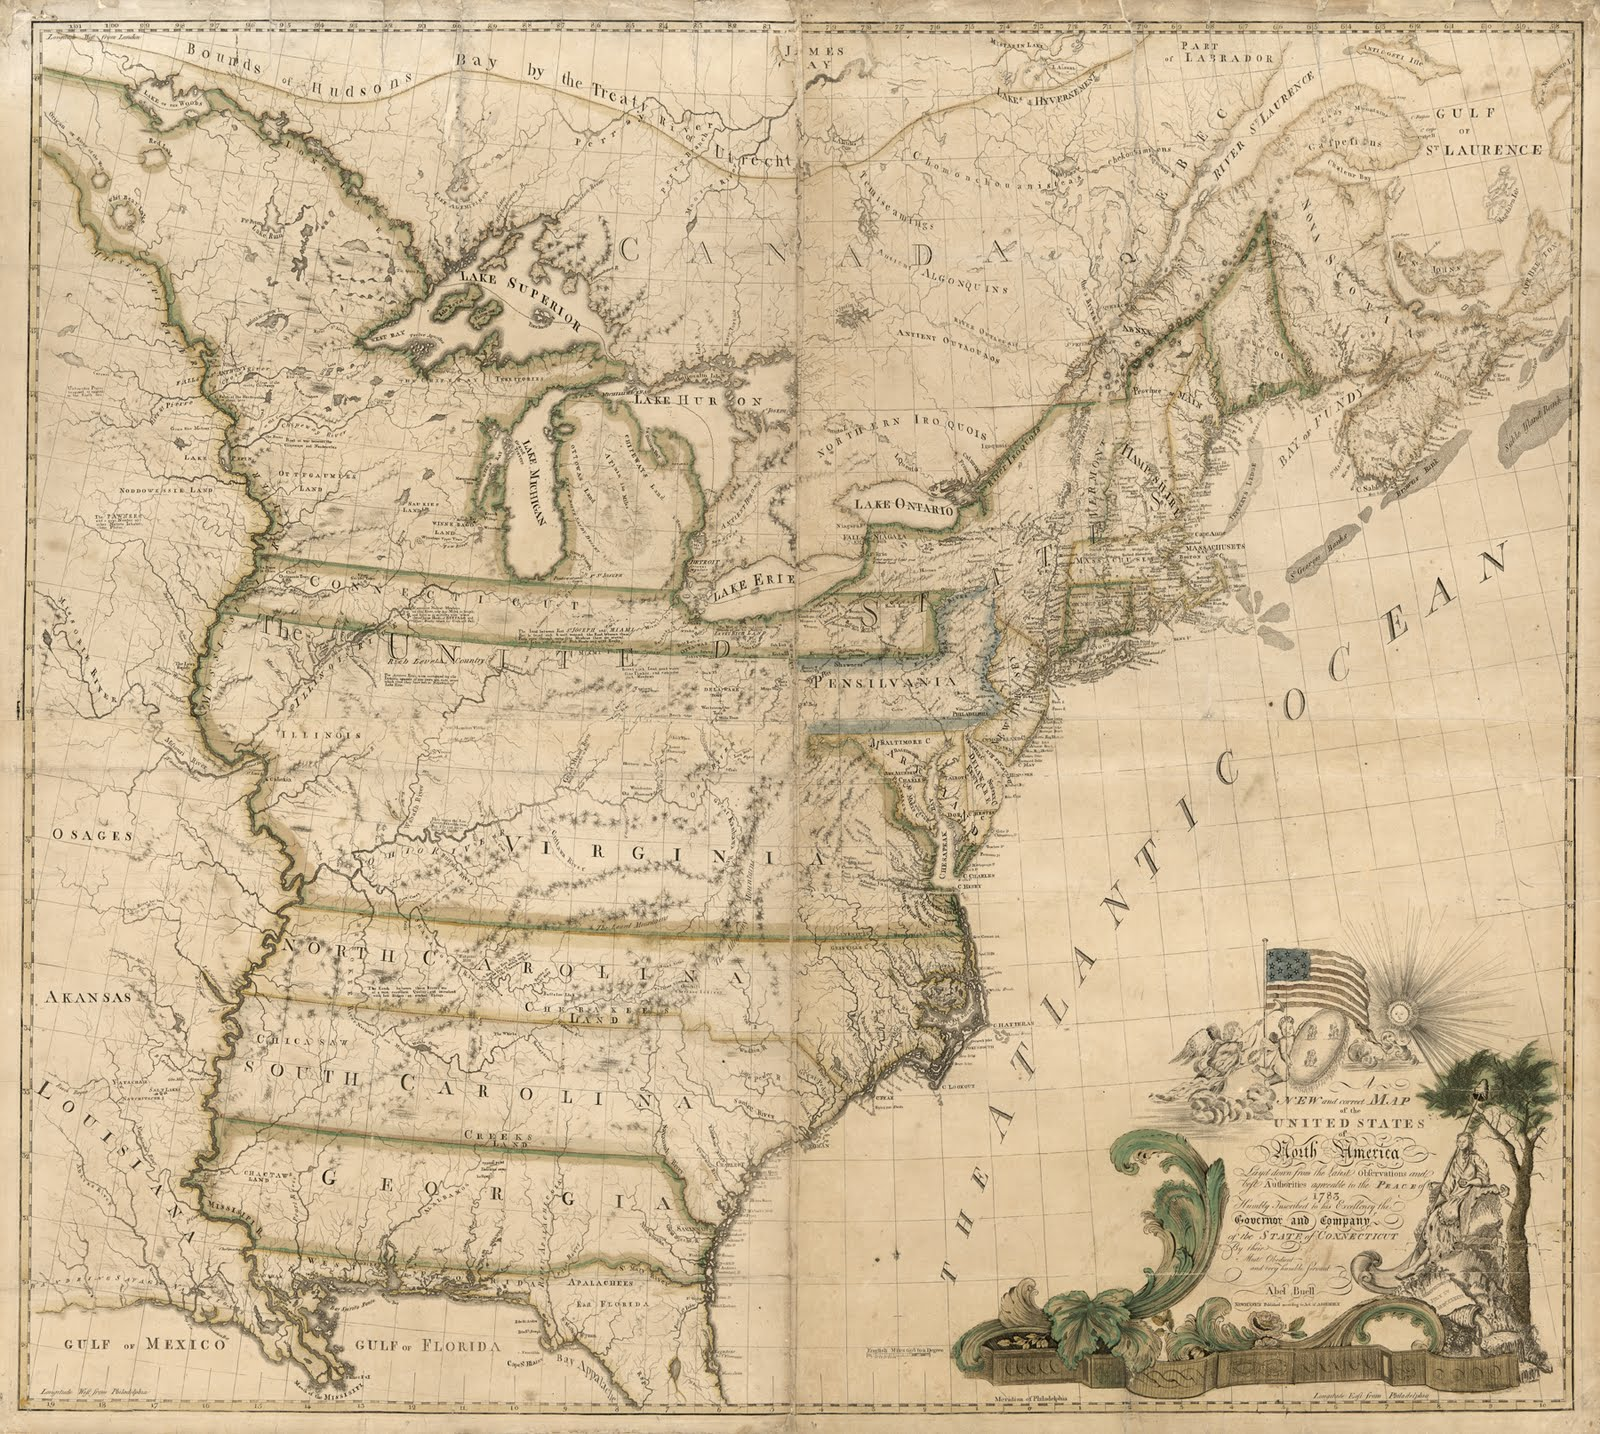 the first map of the U.S. drawn and printed in the US by an American (1784)